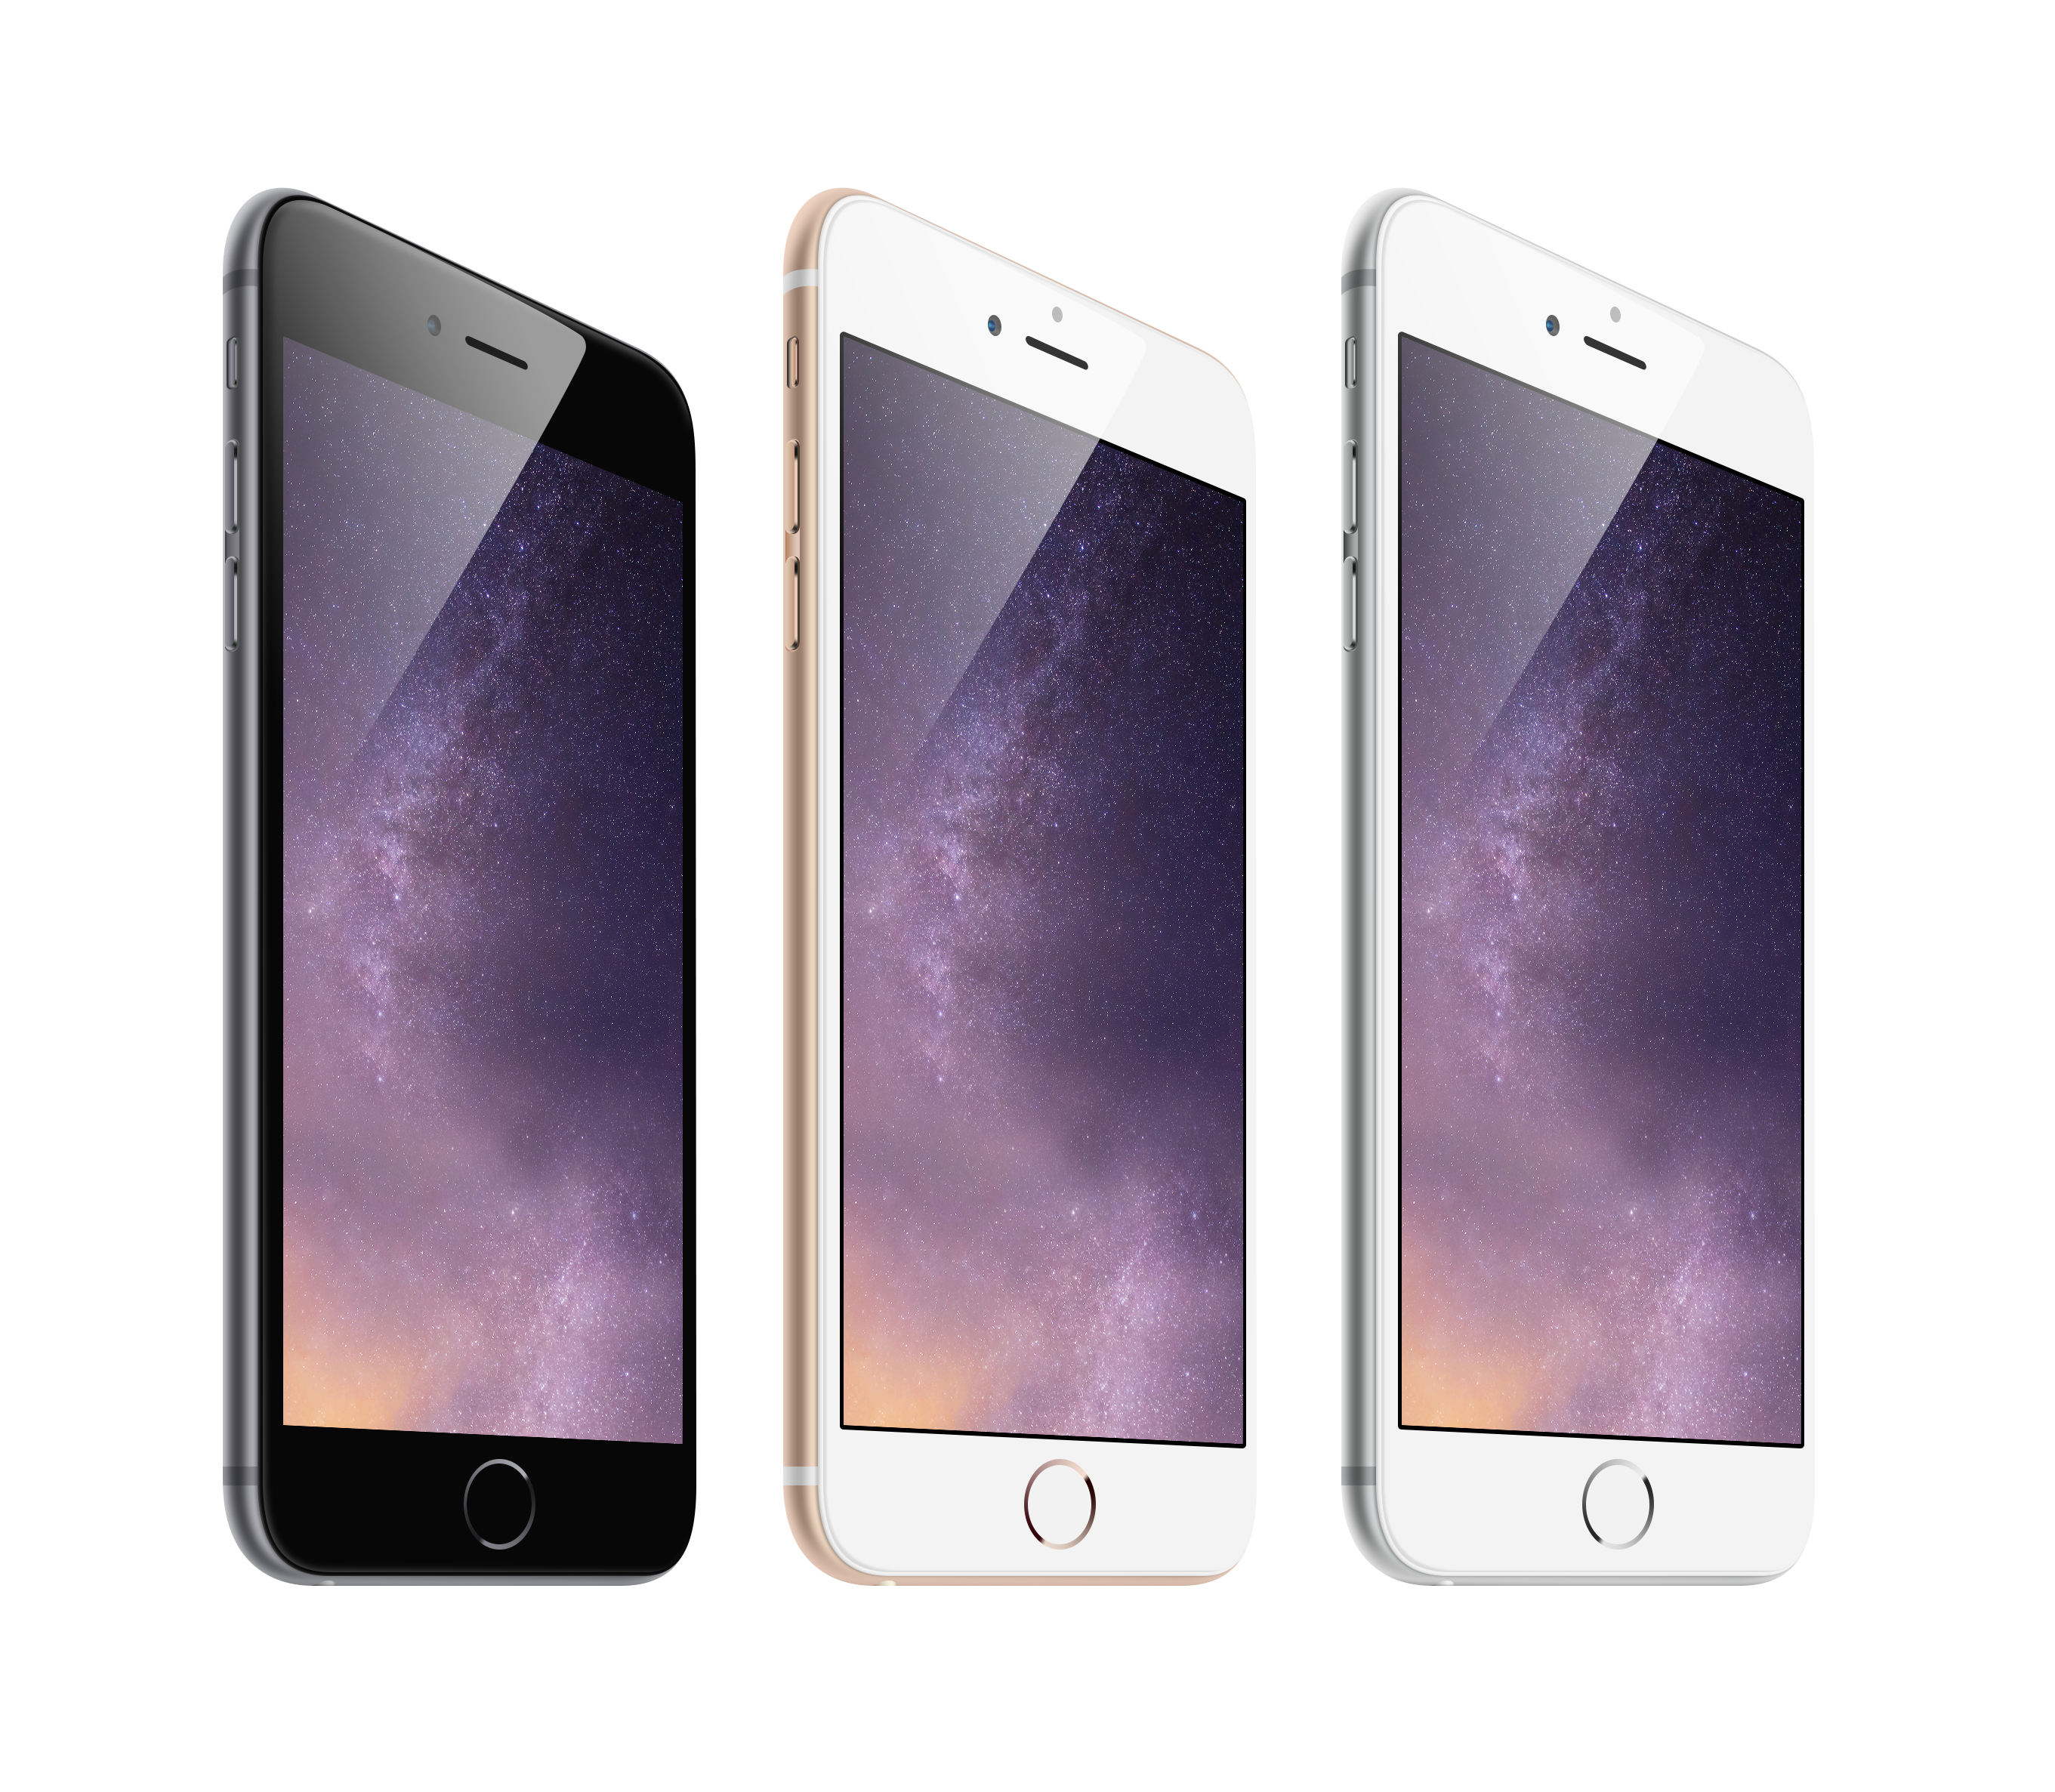 Milky Way Wallpaper: Milky-Way-3.0 Wallpaper For IPhone 6 And 6 Plus By